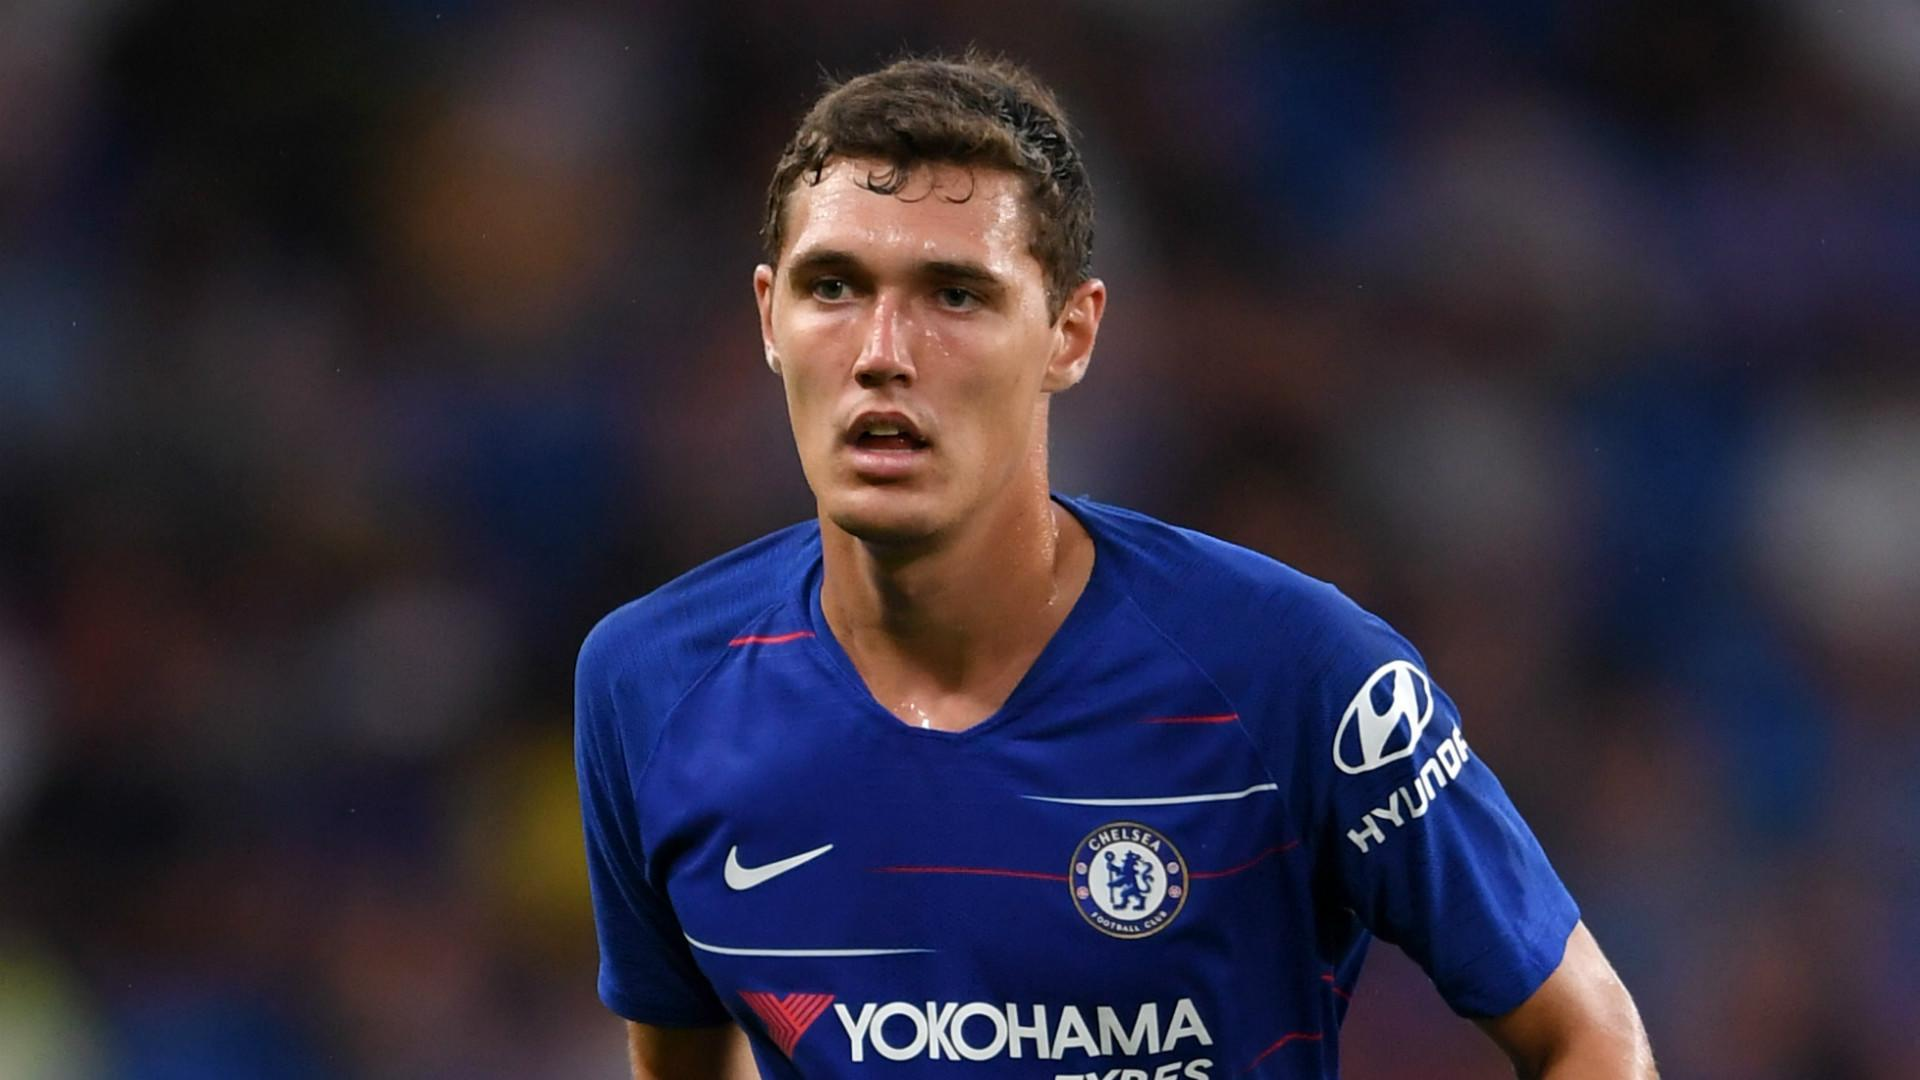 Christensen sees his future at Chelsea after earning 'trust' from Lampard